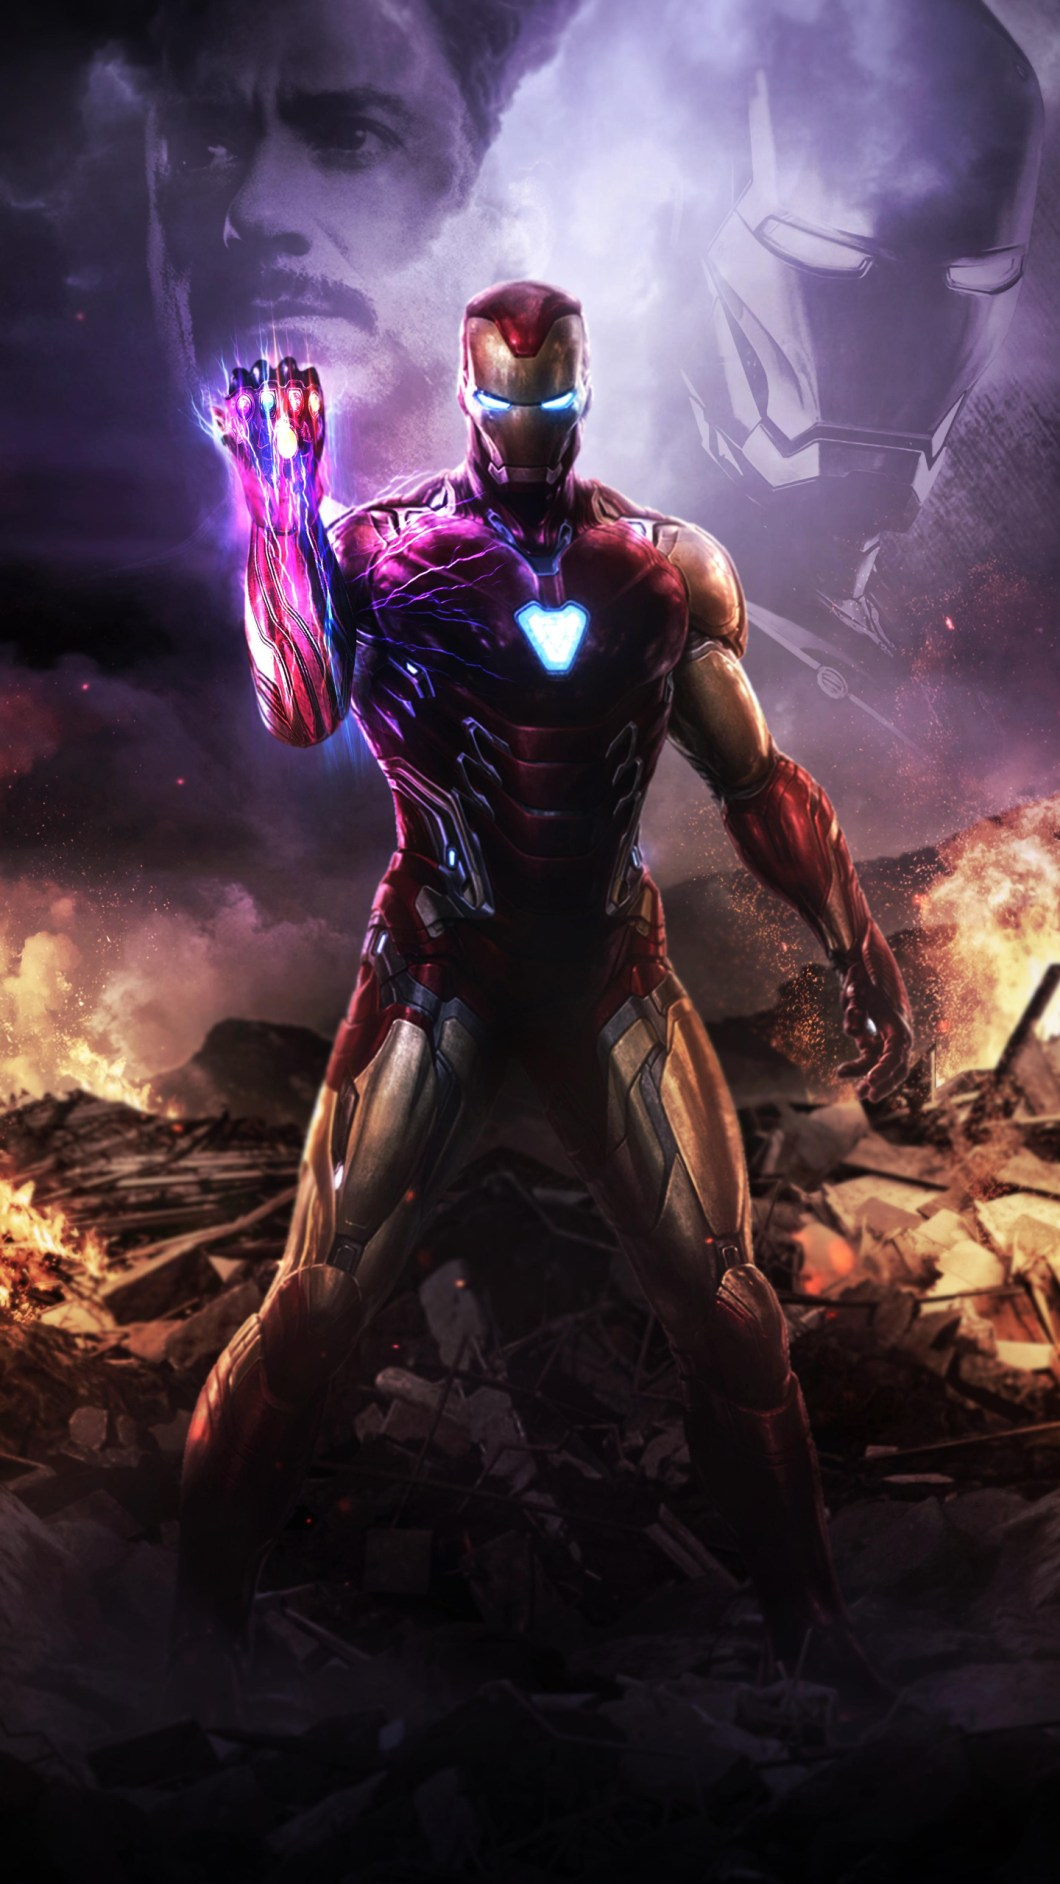 Iron Man Wallpaper 4k For Android Bestpicture1org